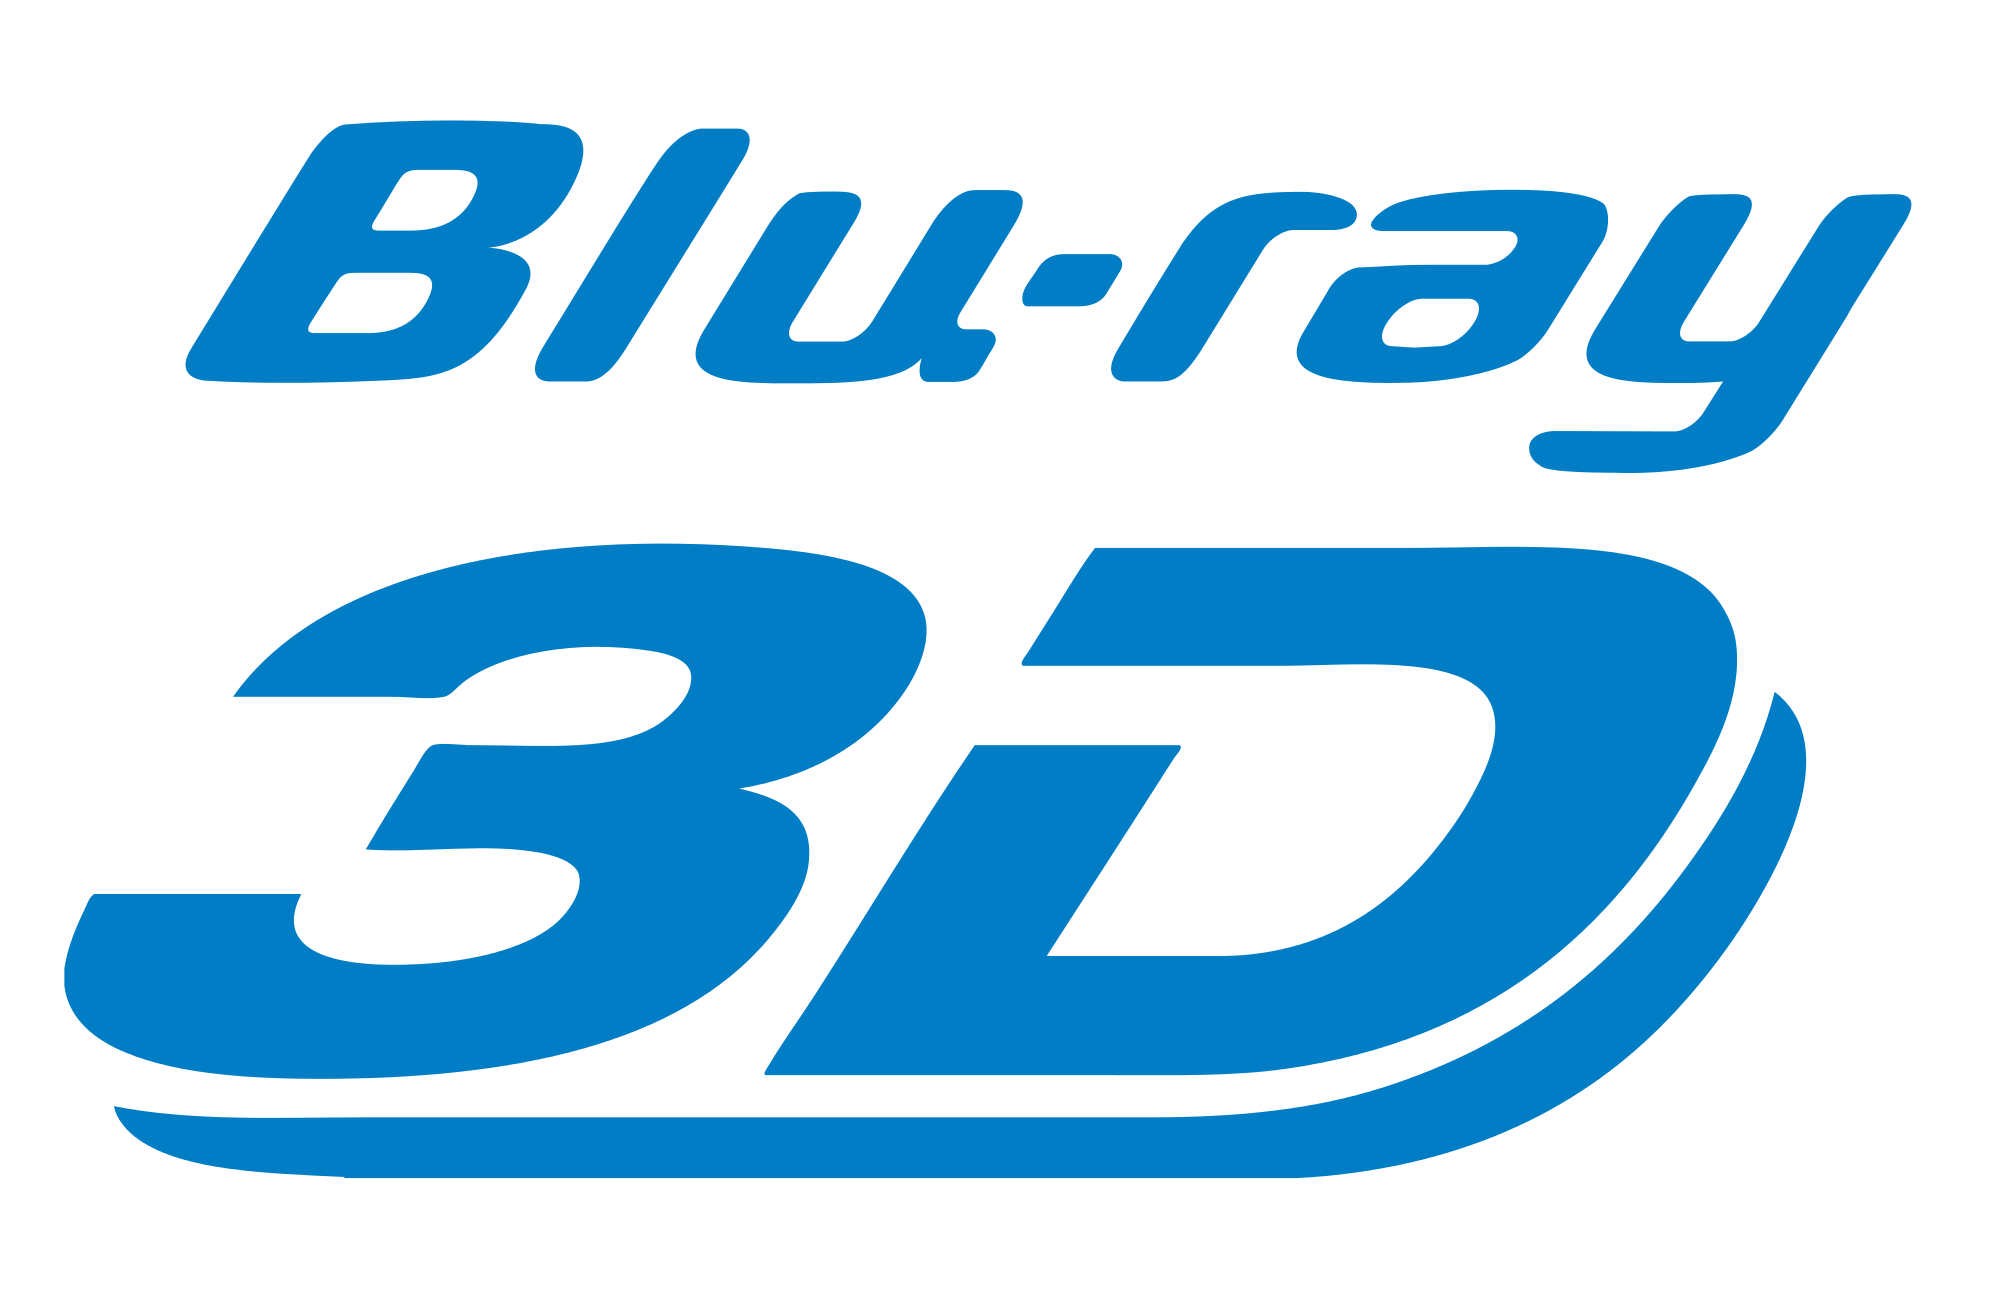 Blu_ray_3d.png